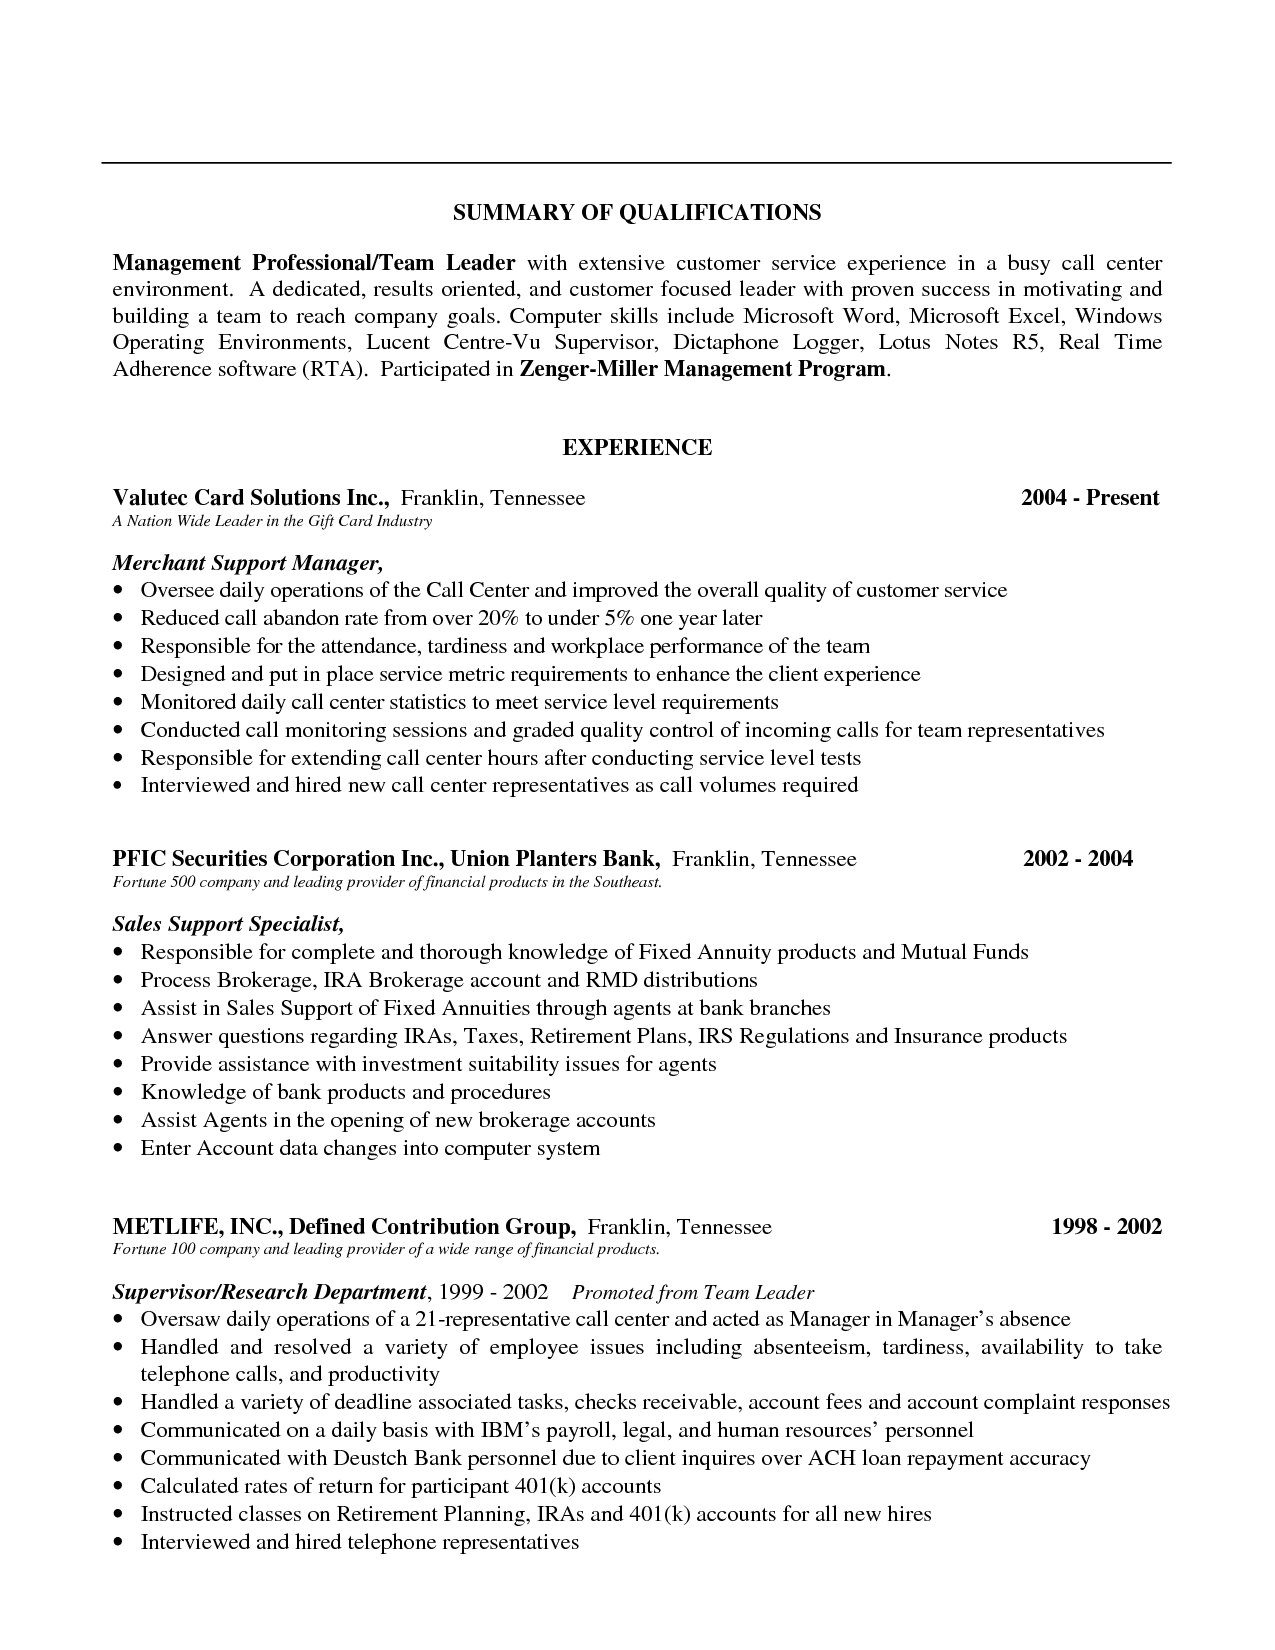 Sample Resume Summary Statement Doc Sample Resumes Summary Qualifications Buyer Resume Statement